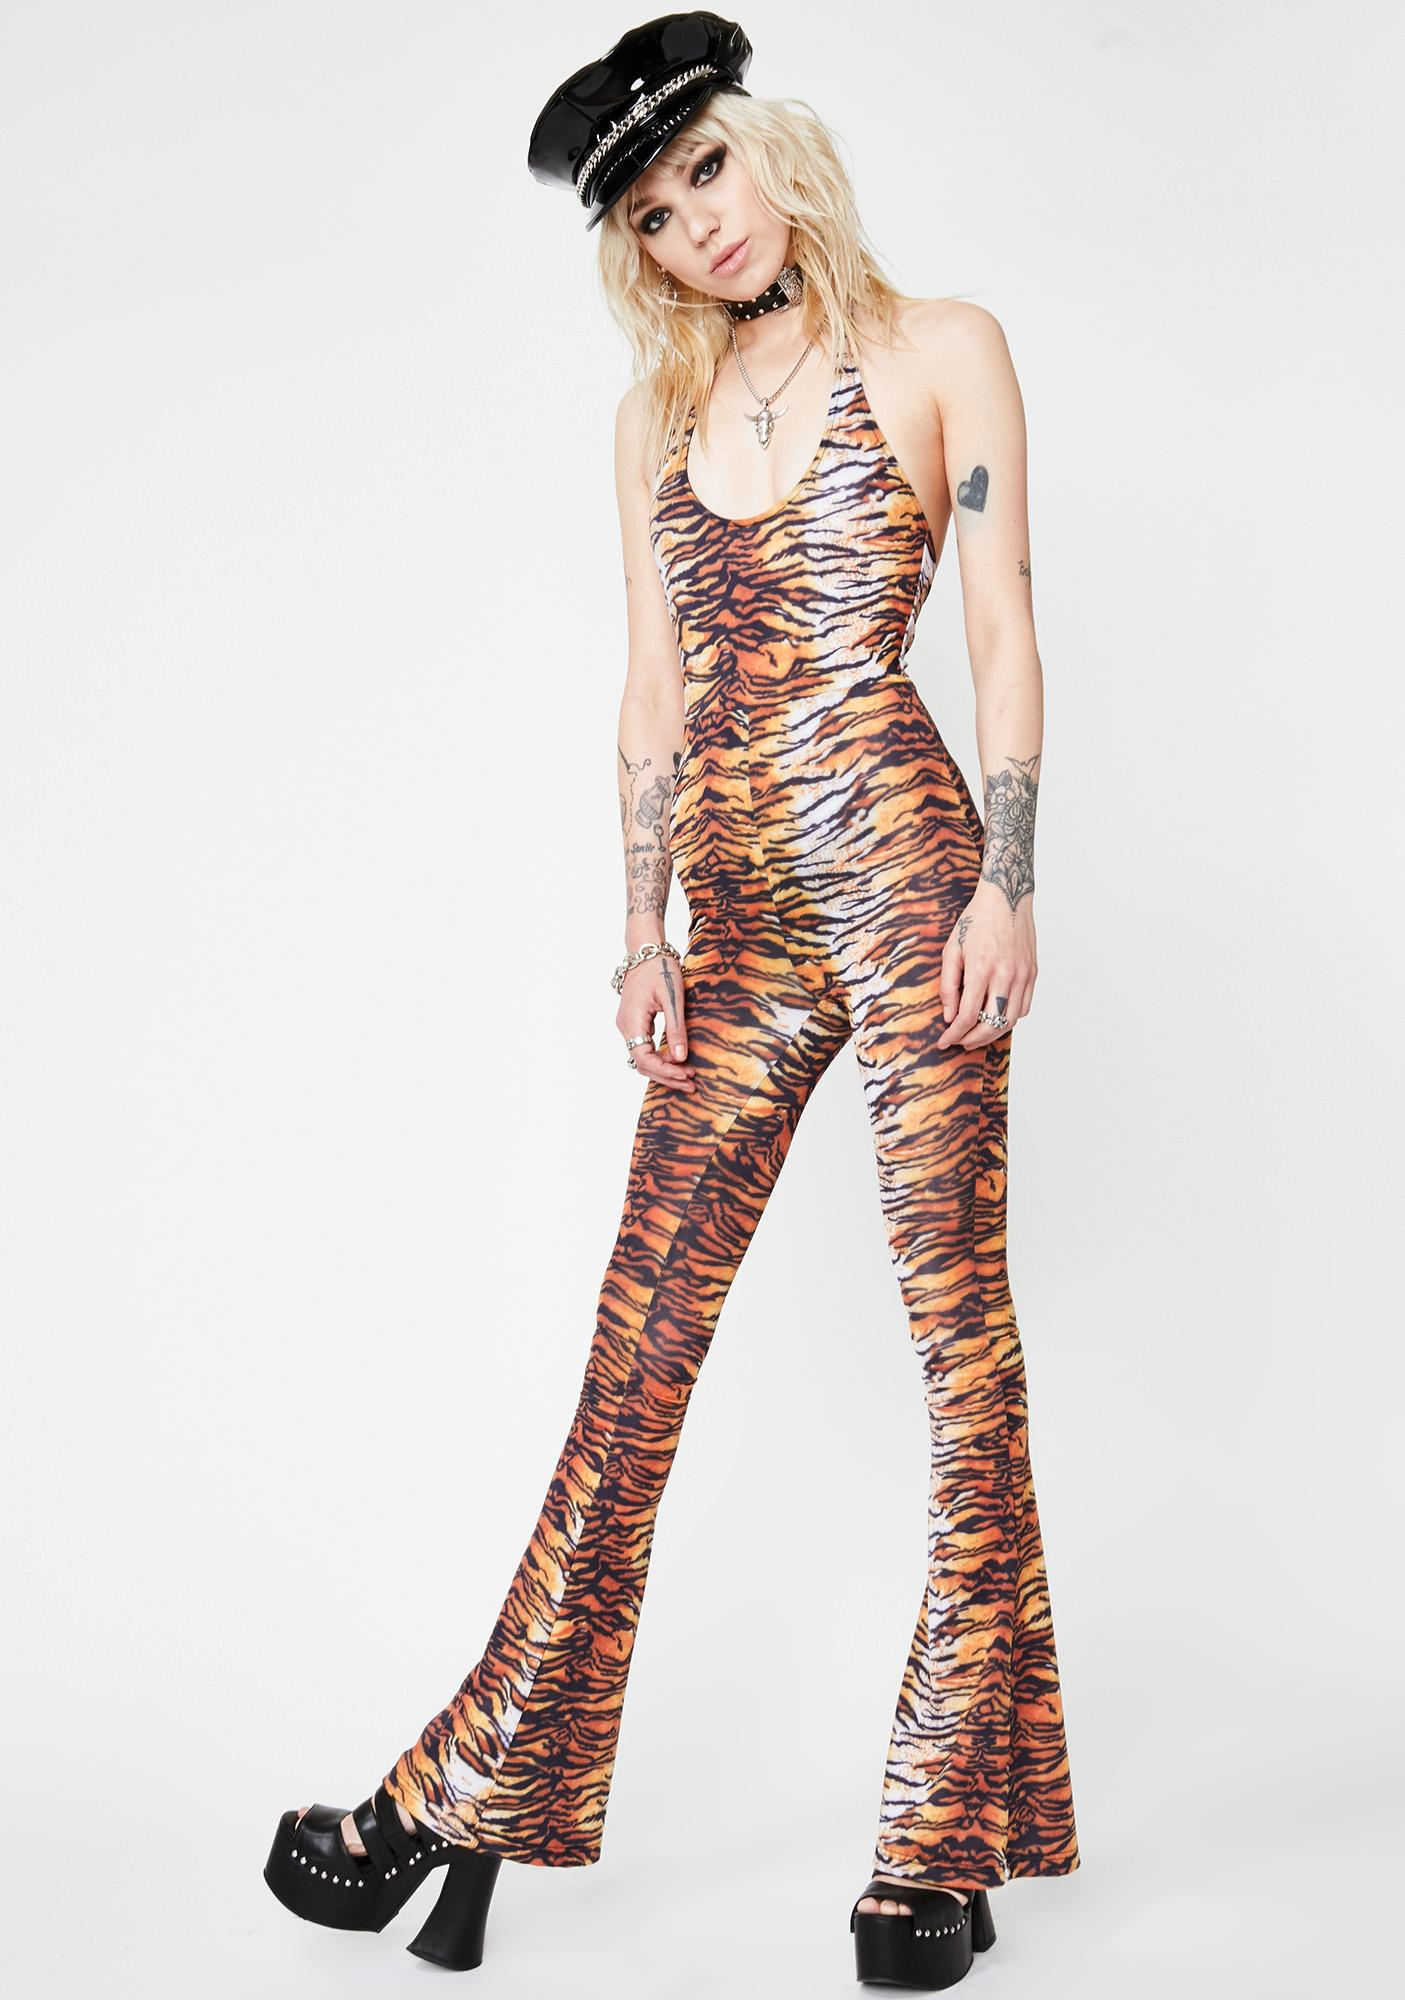 HOROSCOPEZ Lethal Weapon Tiger Jumpsuit